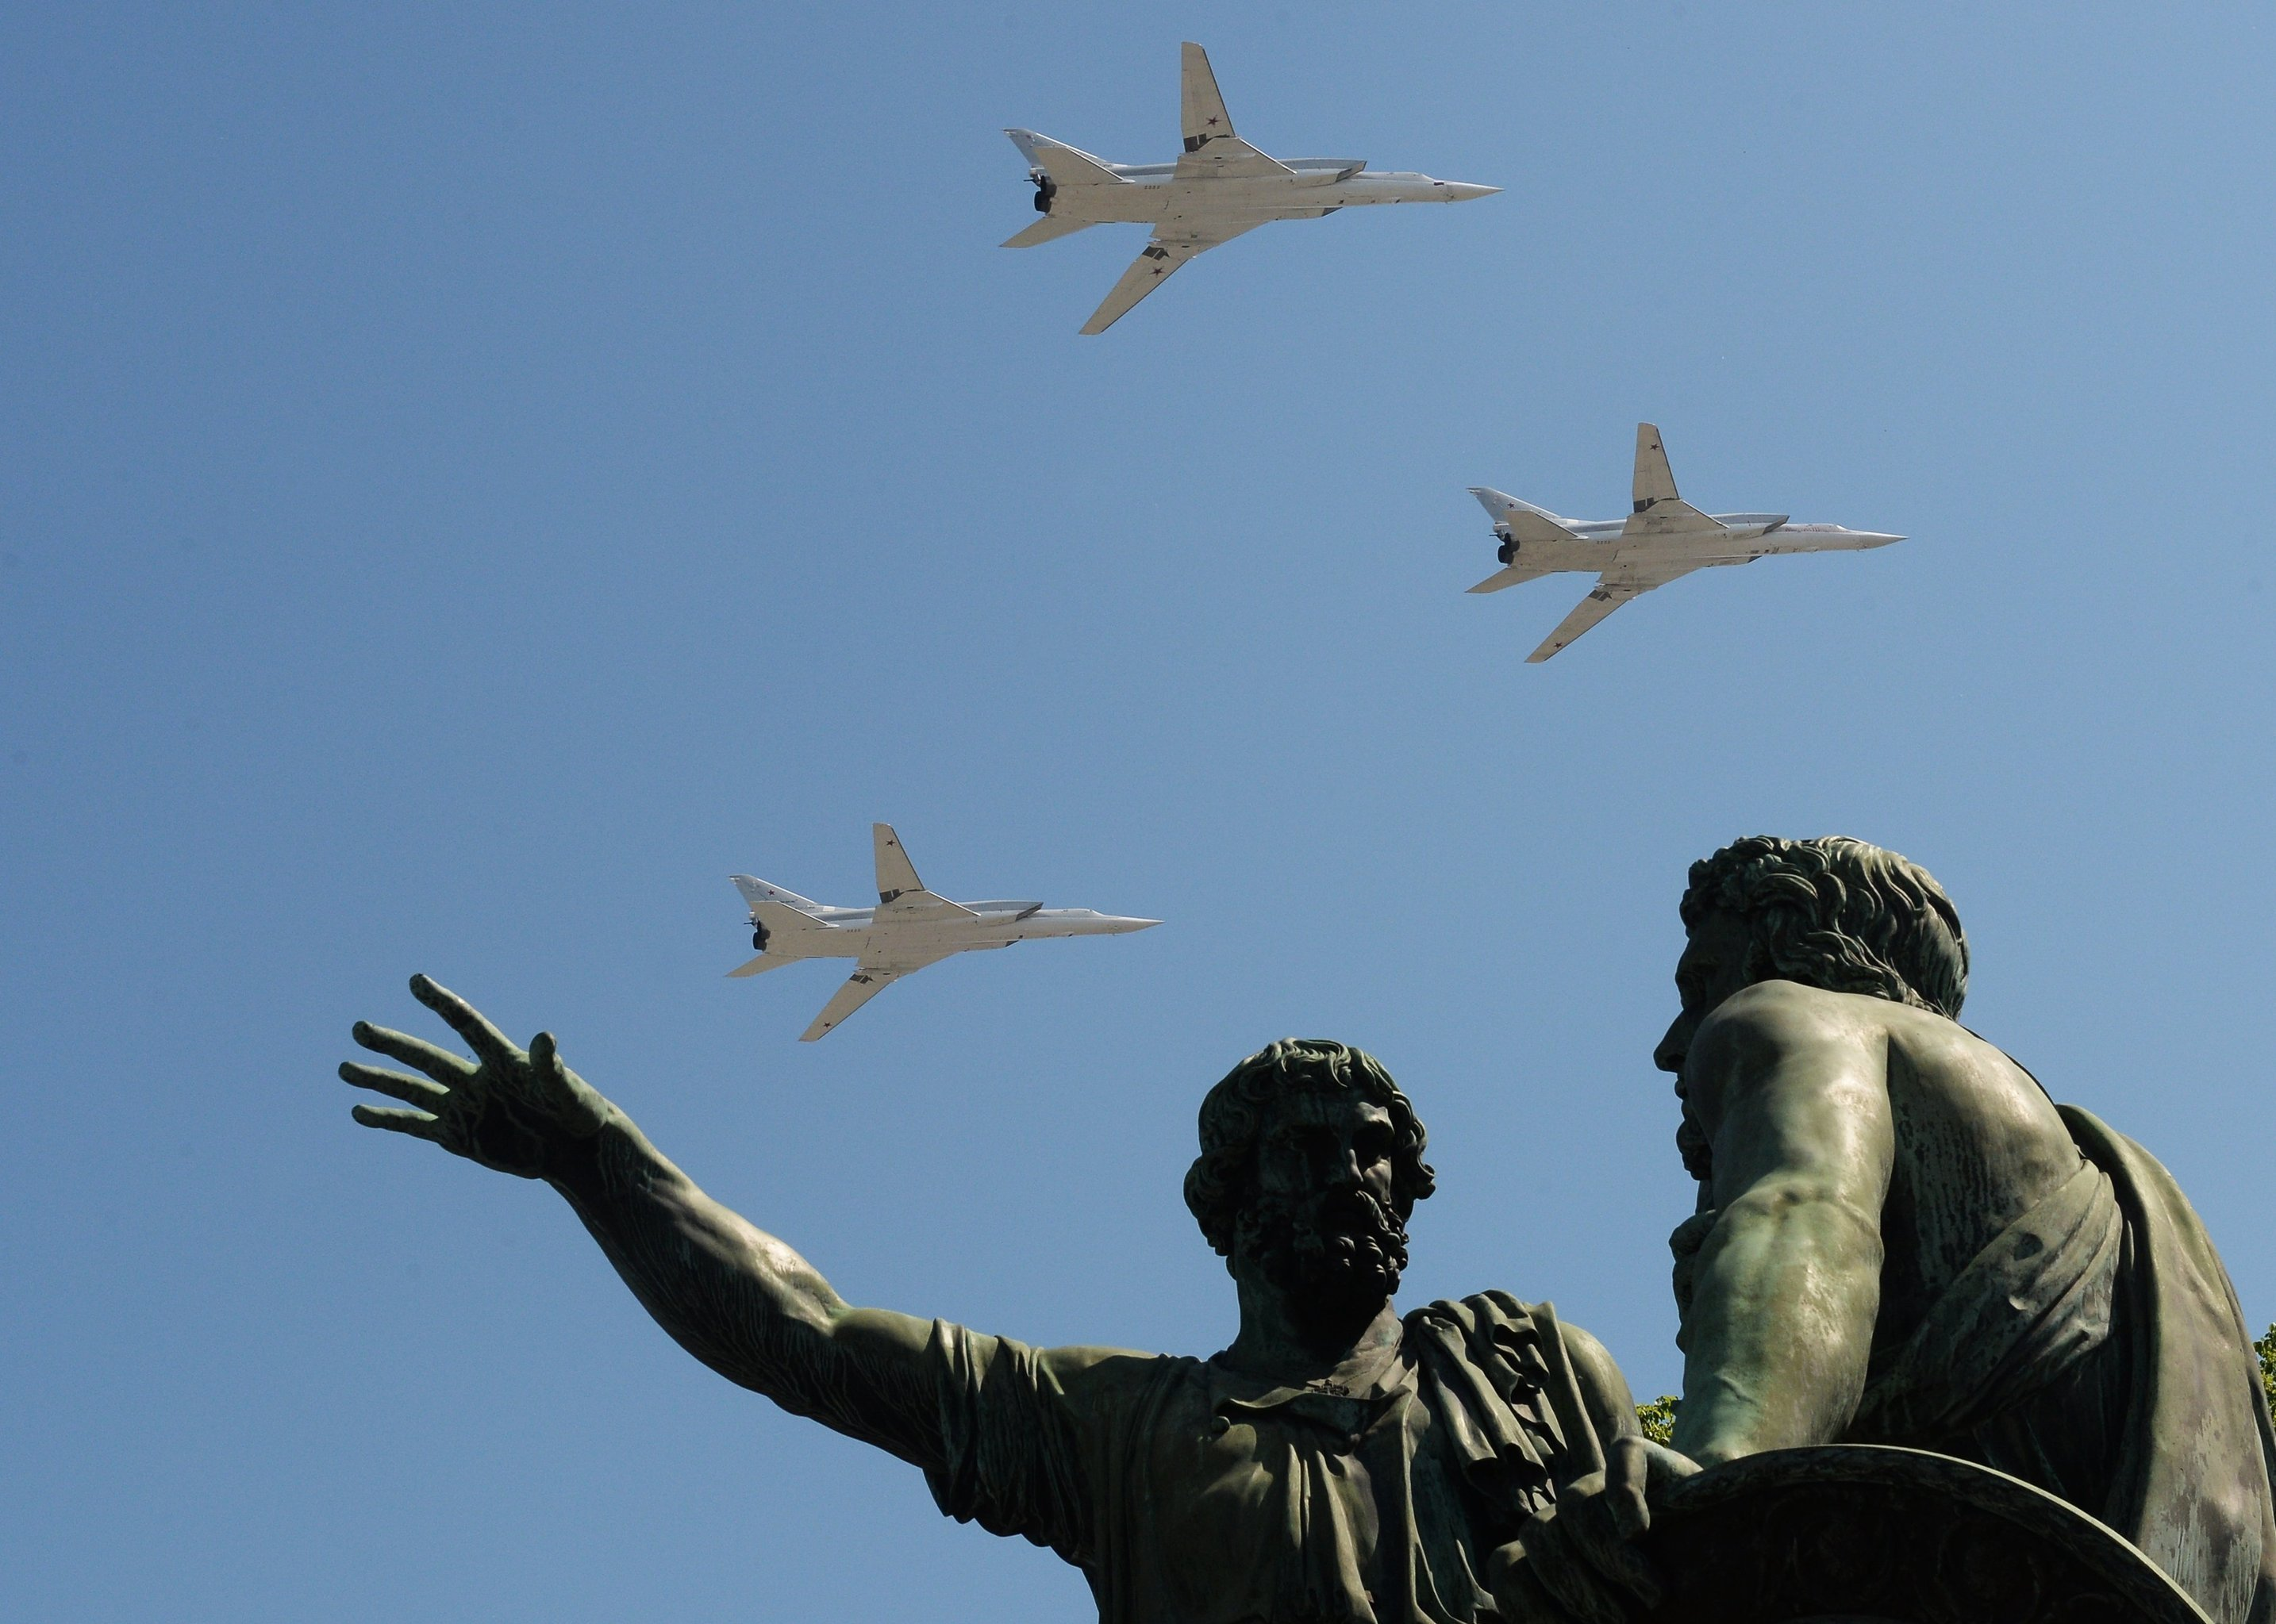 The Tu-22M3 bombers seen flying during the May 9 Victory Day Parade in Moscow